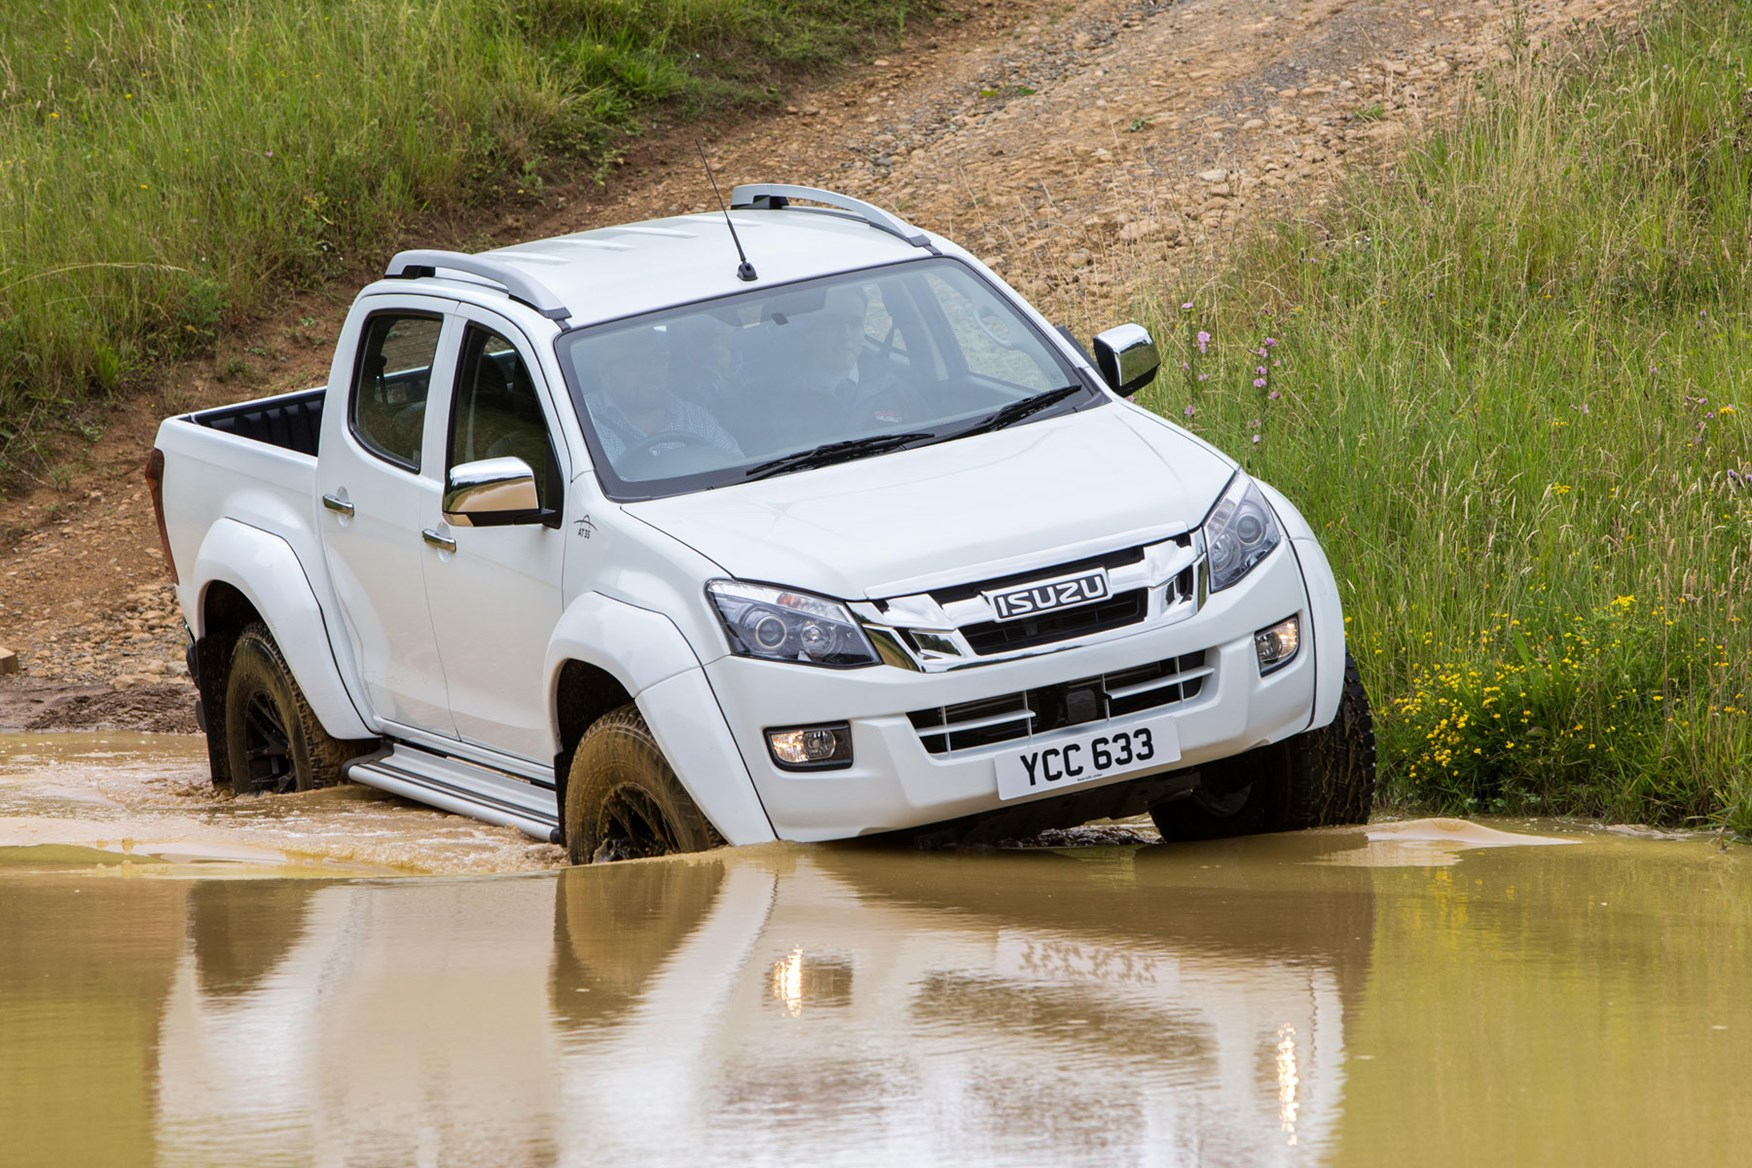 Isuzu D-Max AT35 2.5 review - front view, driving into water, white